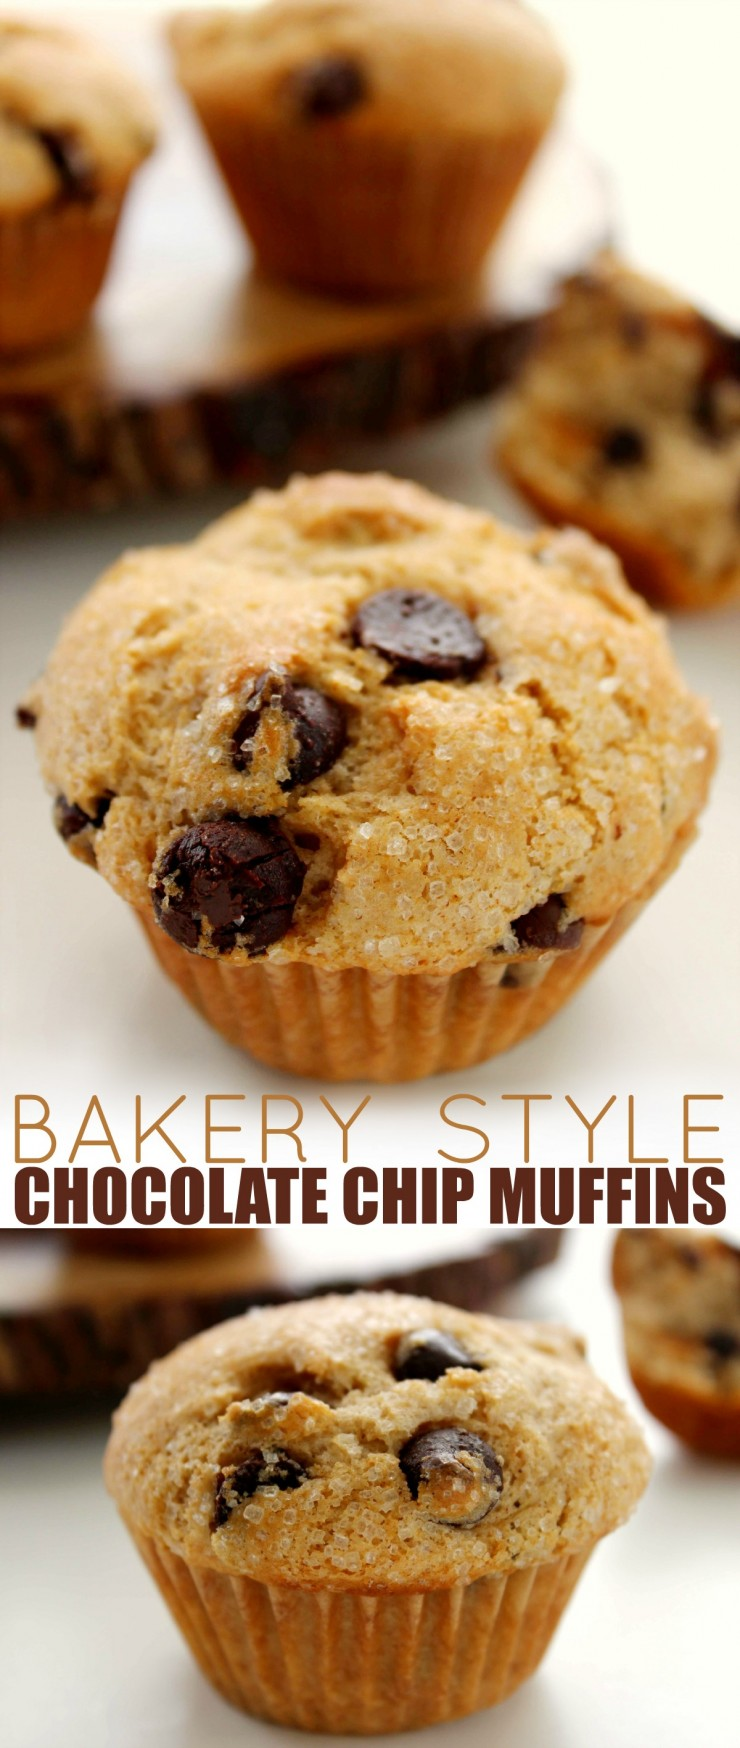 Bakery Style Chocolate Chip Muffins - Life Love Liz